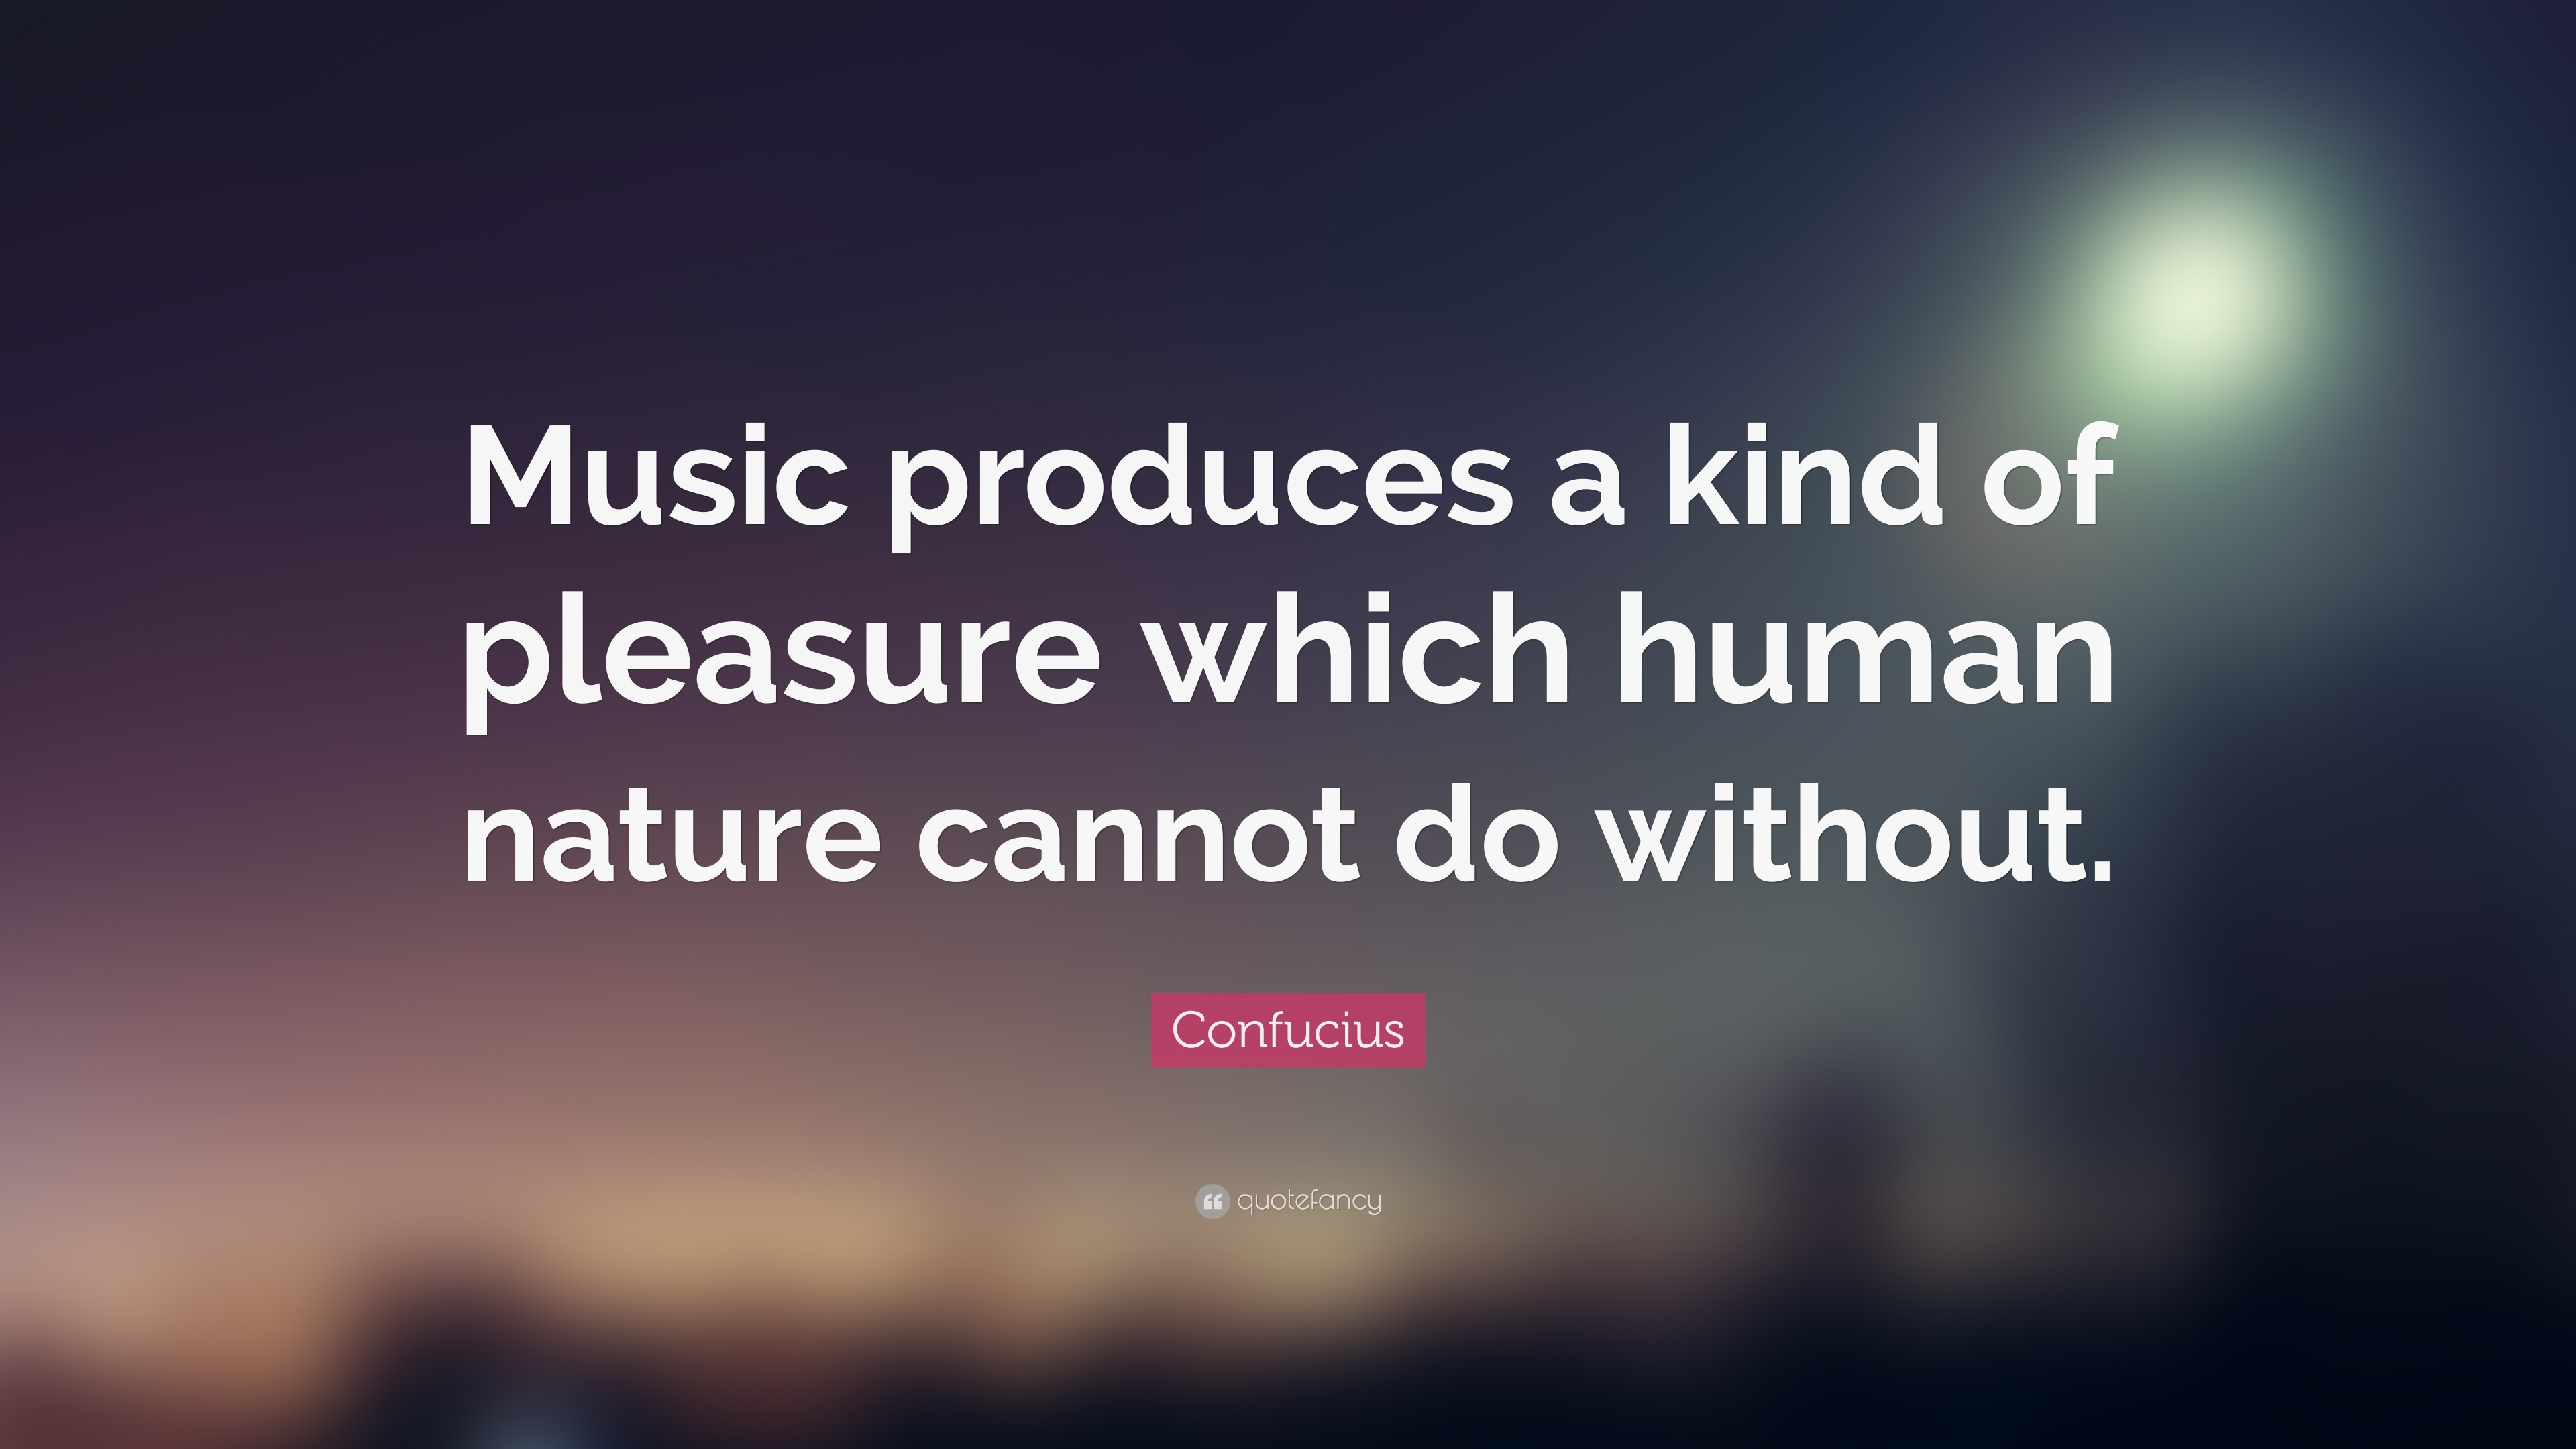 Nice Wallpapers With Inspiring Quotes Confucius Quote Music Produces A Kind Of Pleasure Which